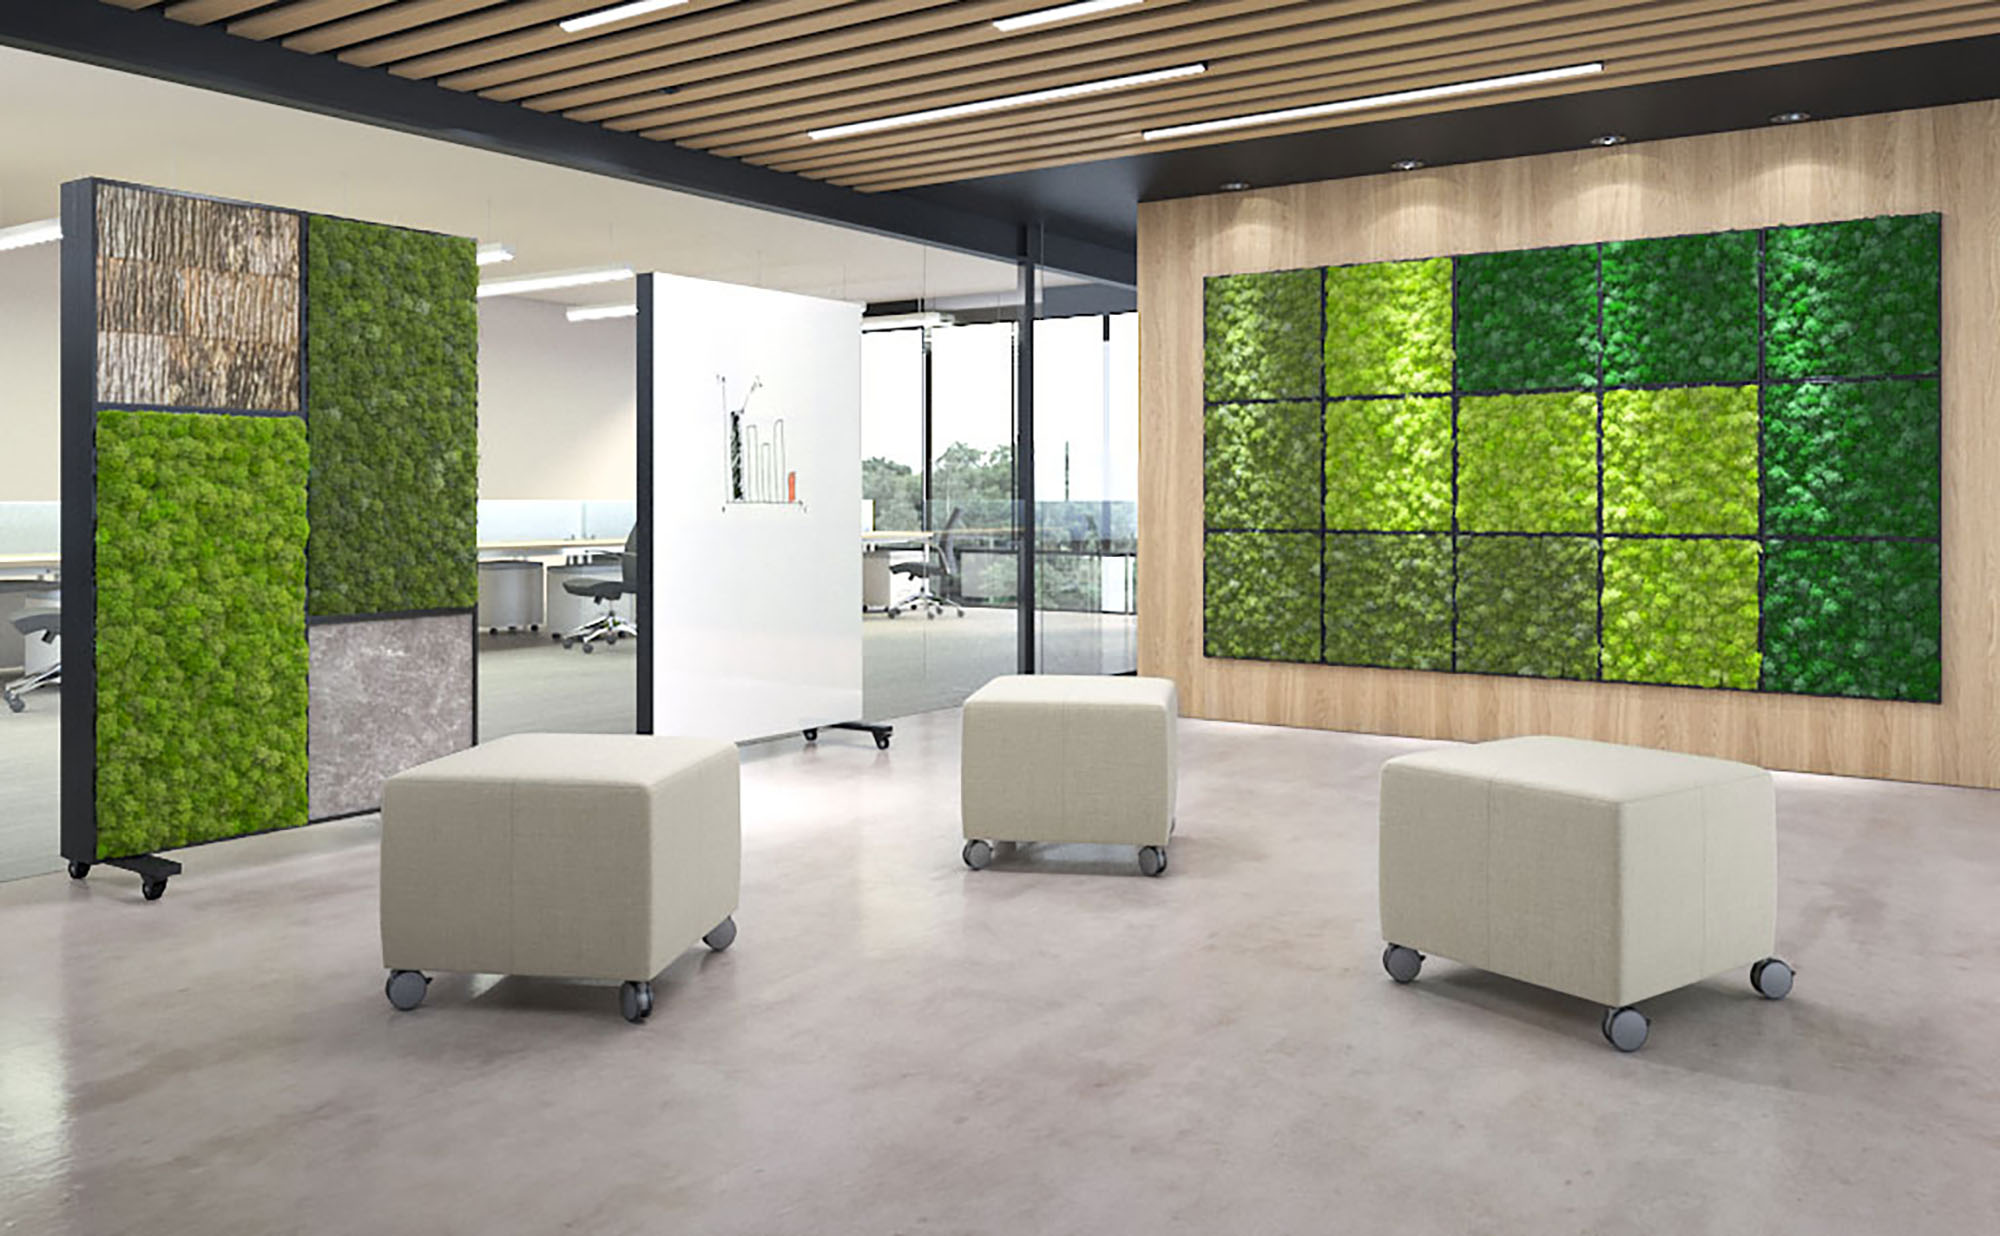 Let's say you don't have outdoor access. Or access is minimal. You can still bring the outside in with these incredible Bio-Canvas panels from Nevins. Made of preserved natural materials - acoustic moss, sustainable poplar bark and light stone - the panels hang in lightweight frames (there are freestanding room dividers too) making the design possibilities endless. Best of all, they're low maintenance, no water or sunlight needed!